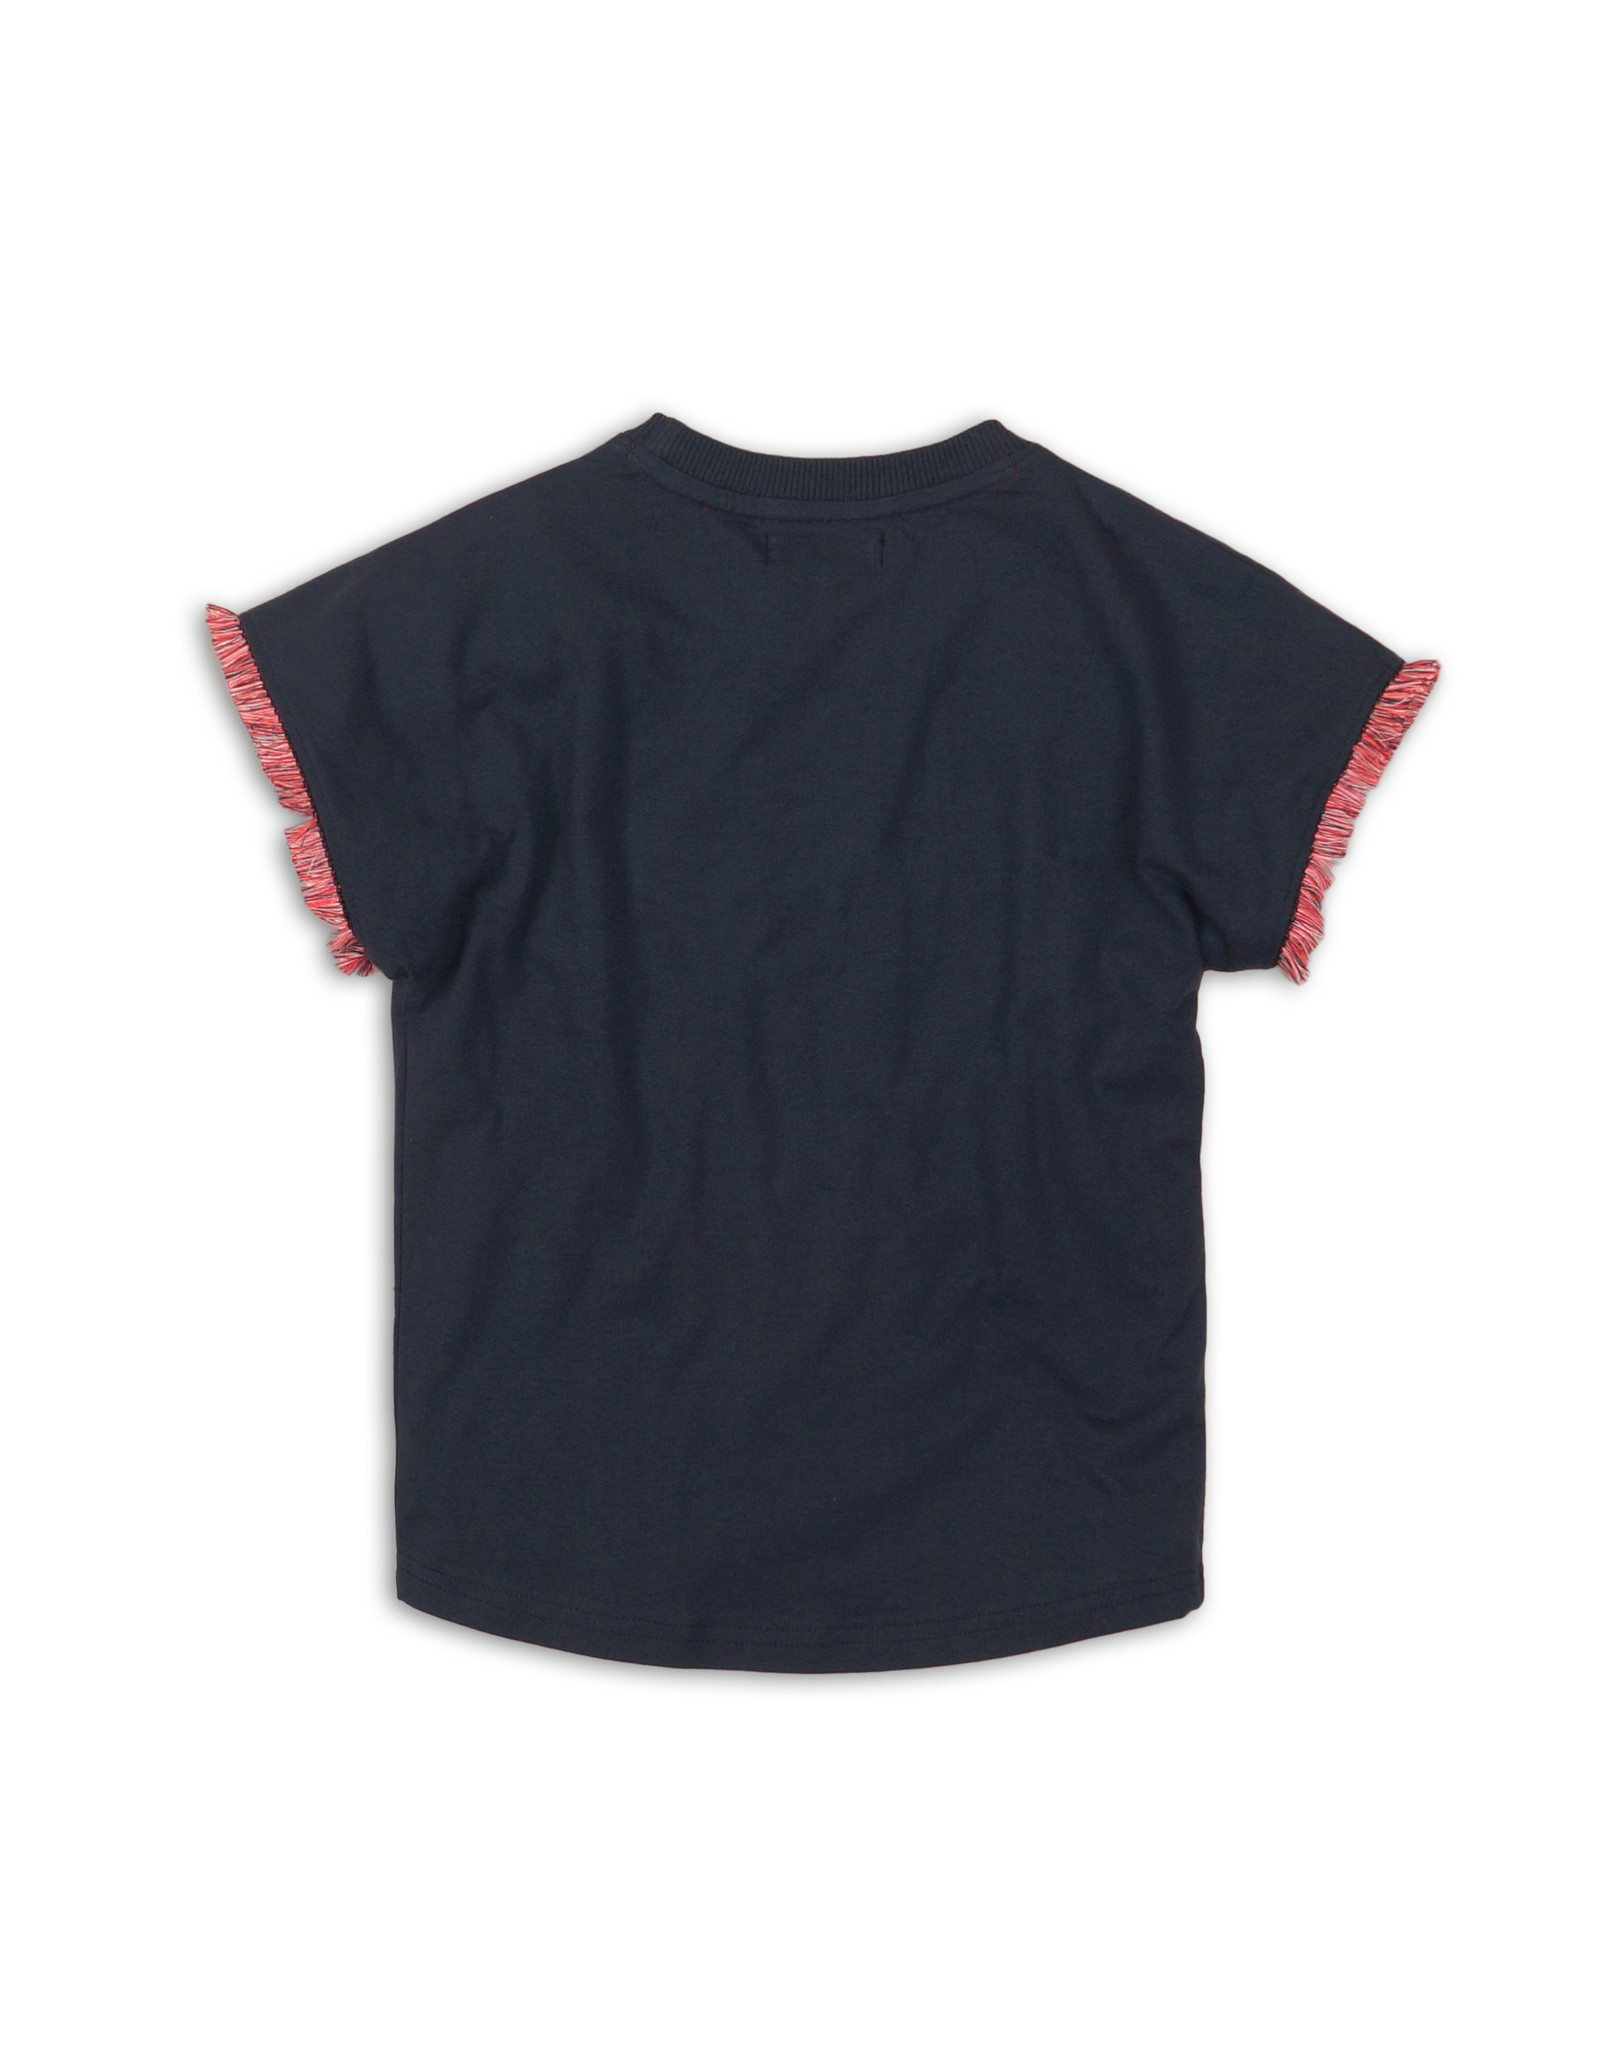 Dutch Jeans T-shirt, 45C-34009